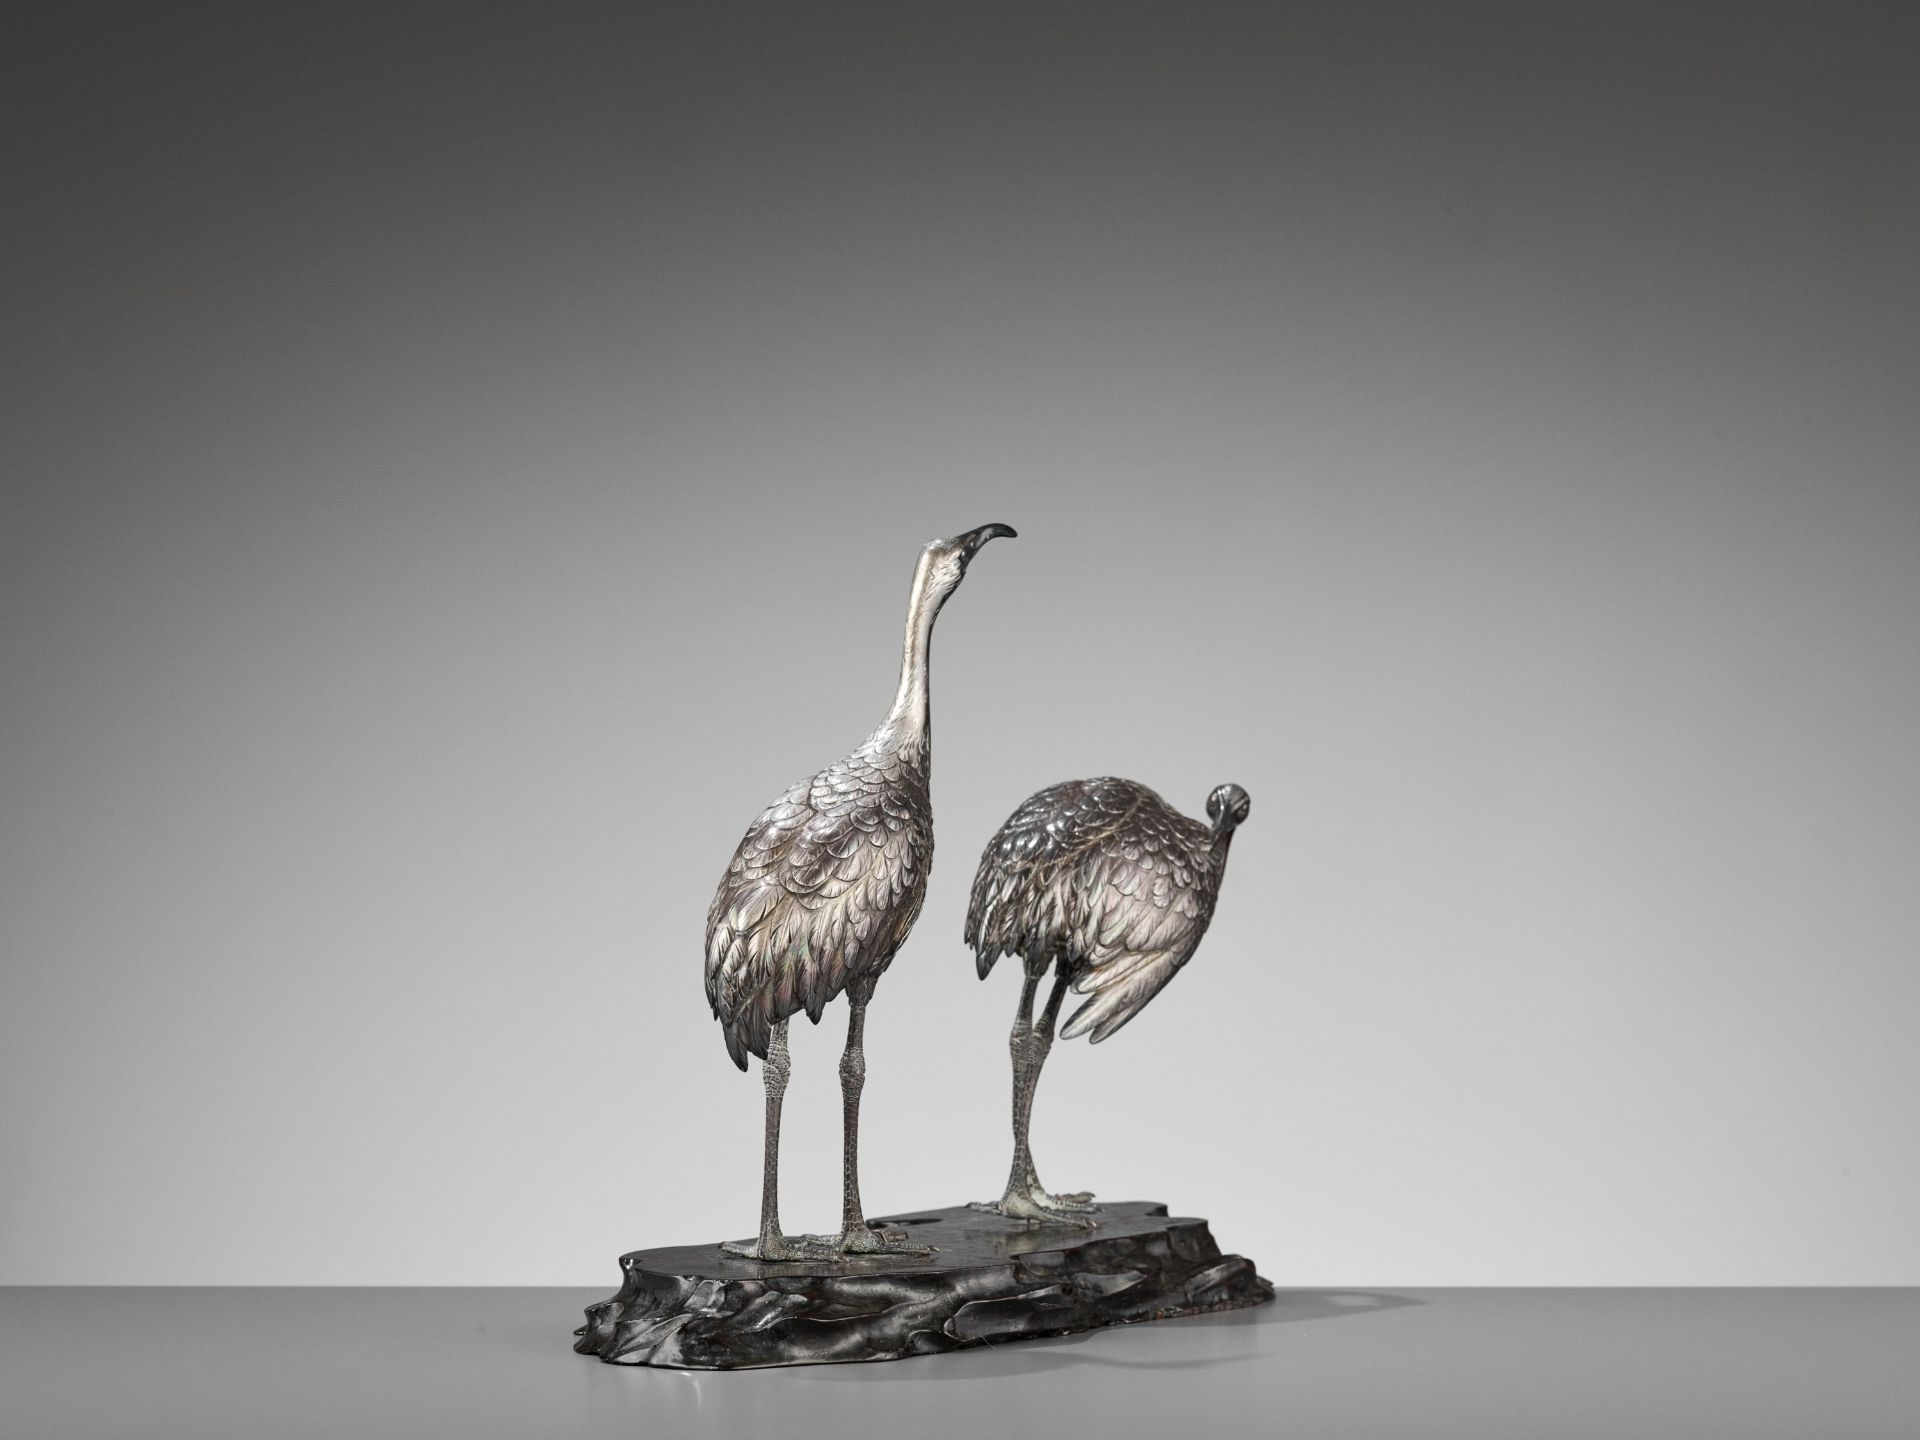 MUSASHIYA: A FINE AND RARE SILVERED OKIMONO OF A PAIR OF CRANES - Image 8 of 11